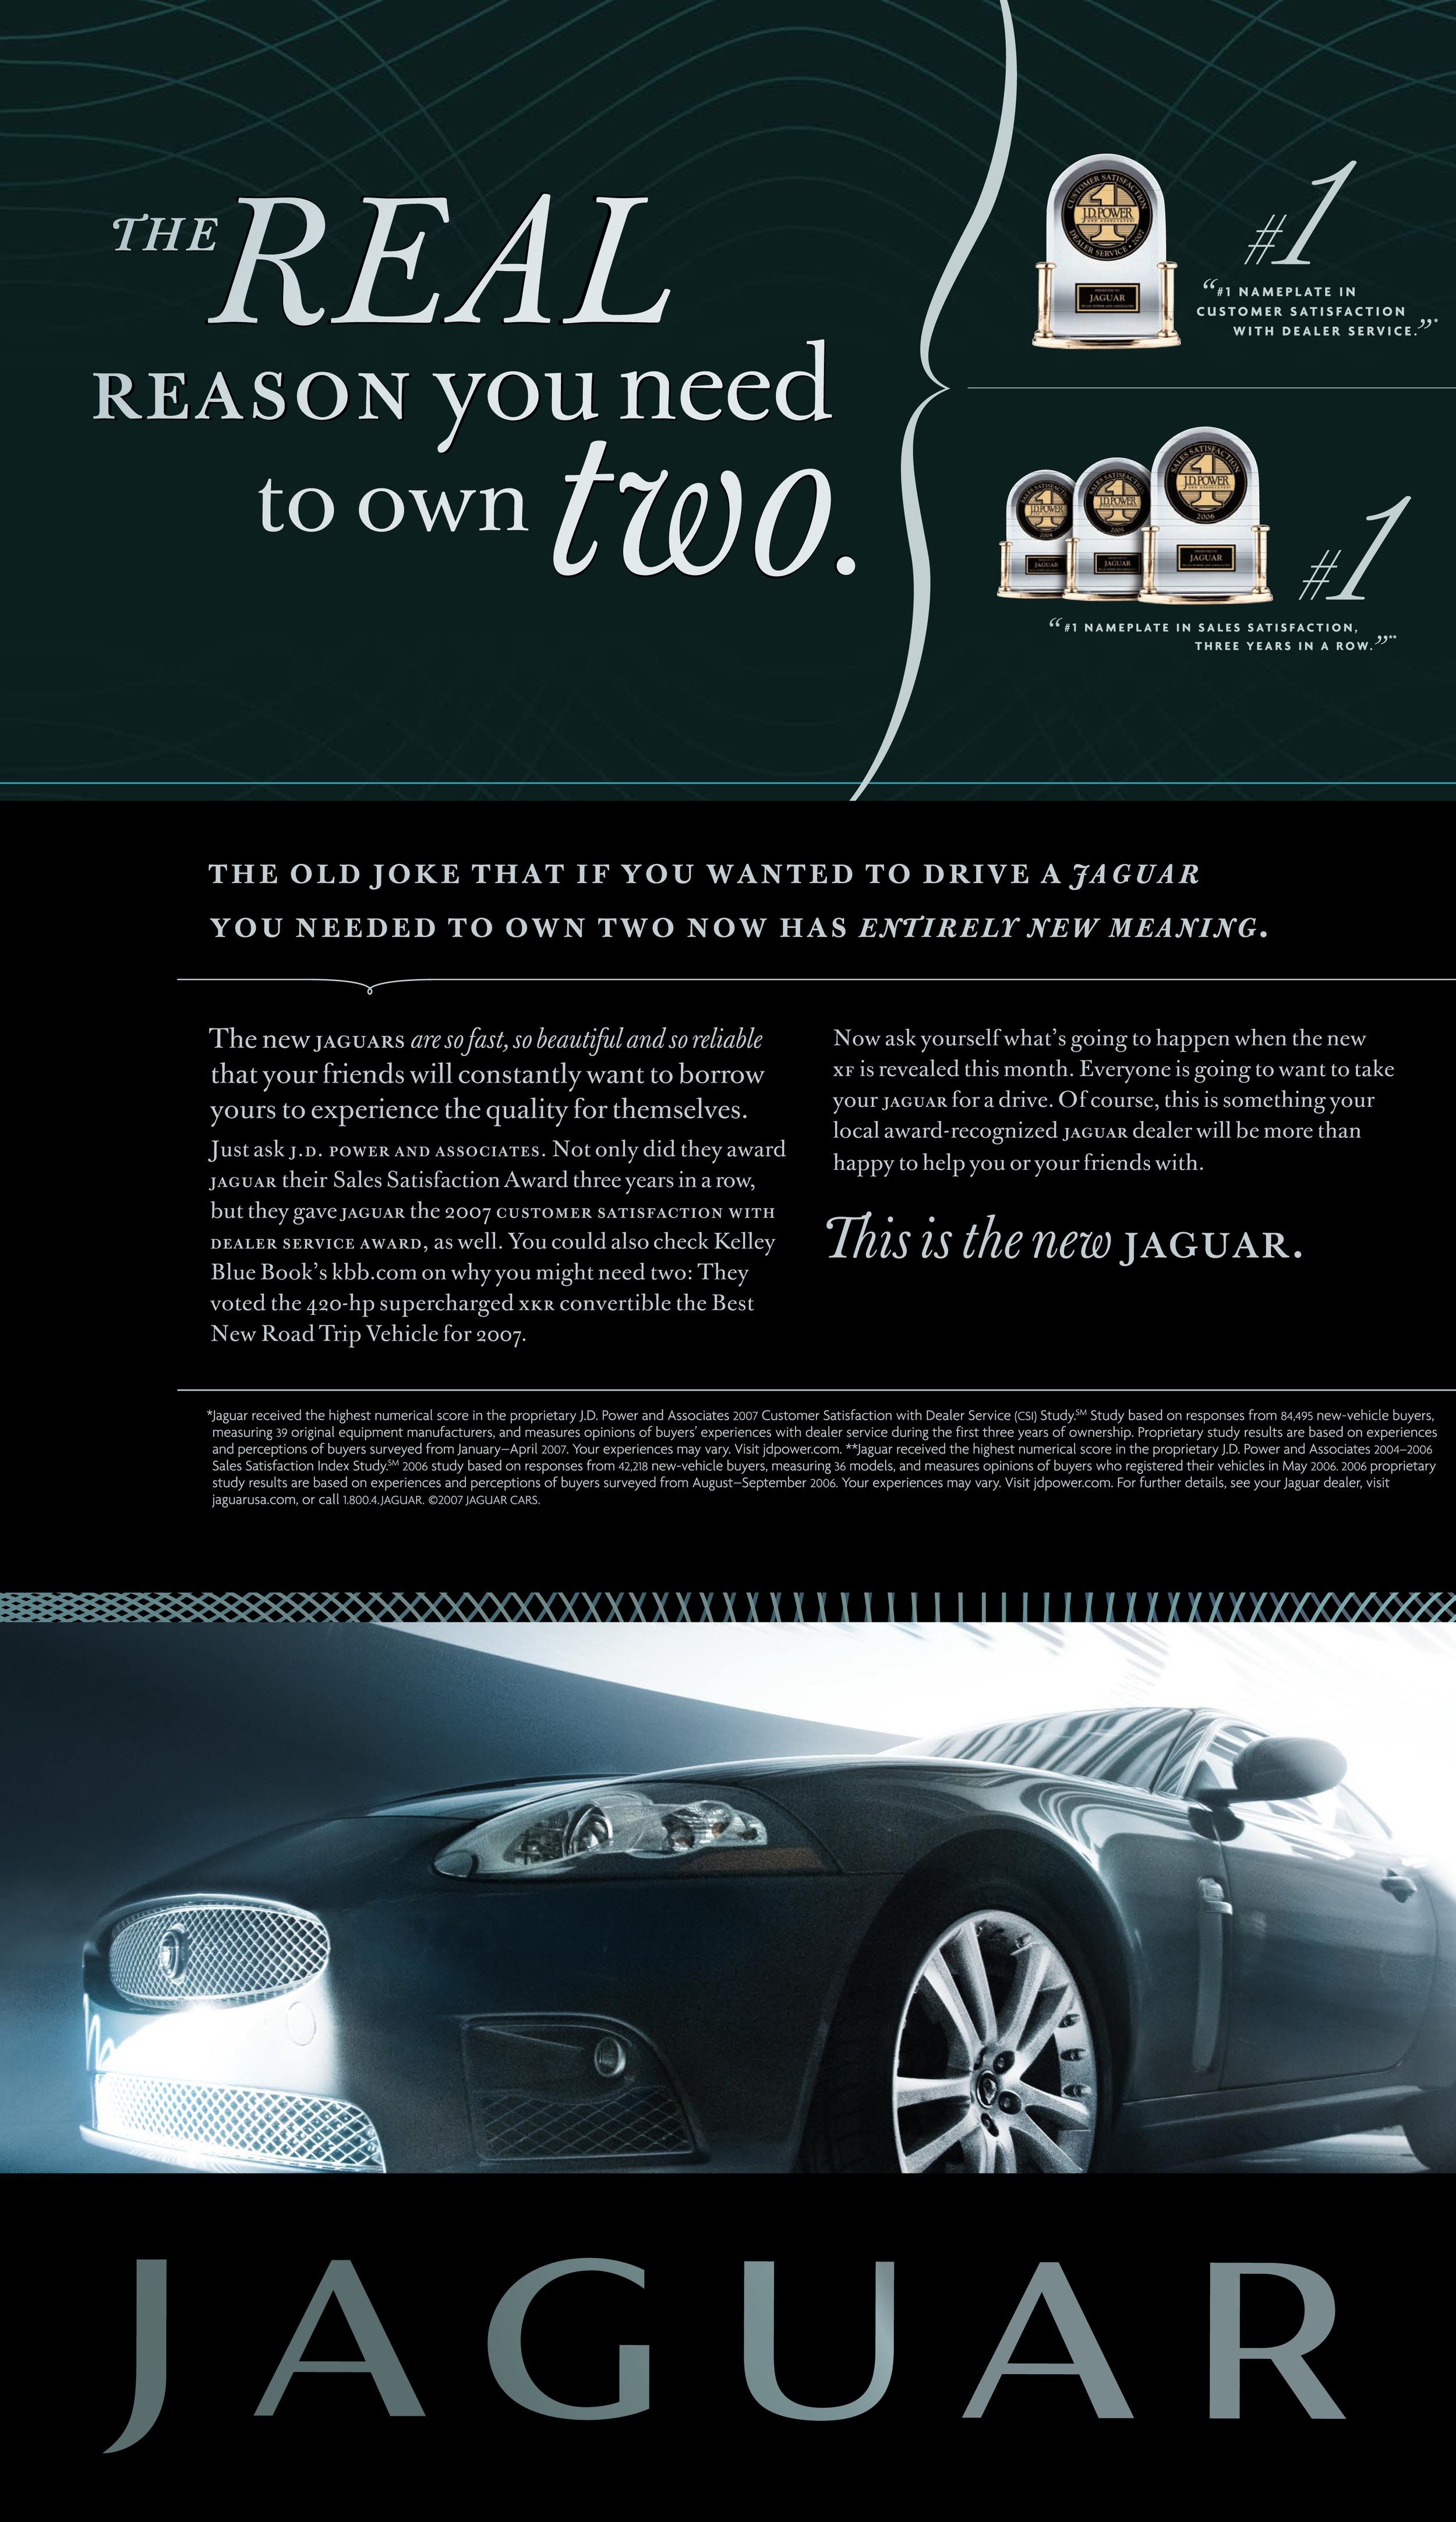 It takes a bold brandto confront its dark past as boldly as Jaguar did in this case.